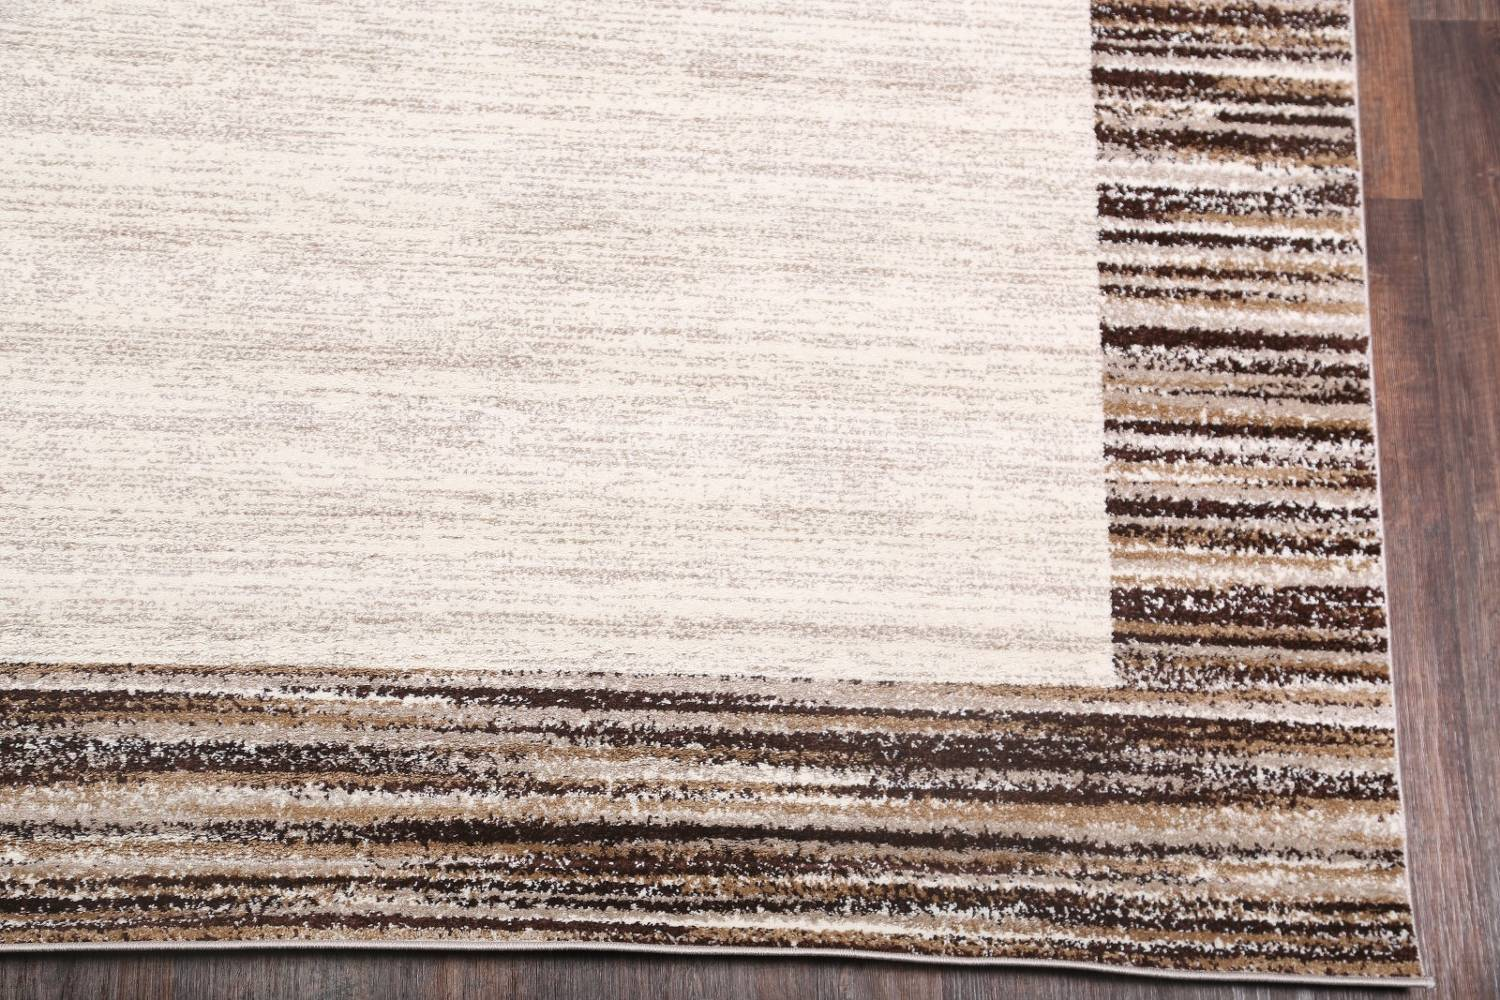 Contemporary Reproduction Modern Turkish Oriental Ivory/Brown Area Rug image 4